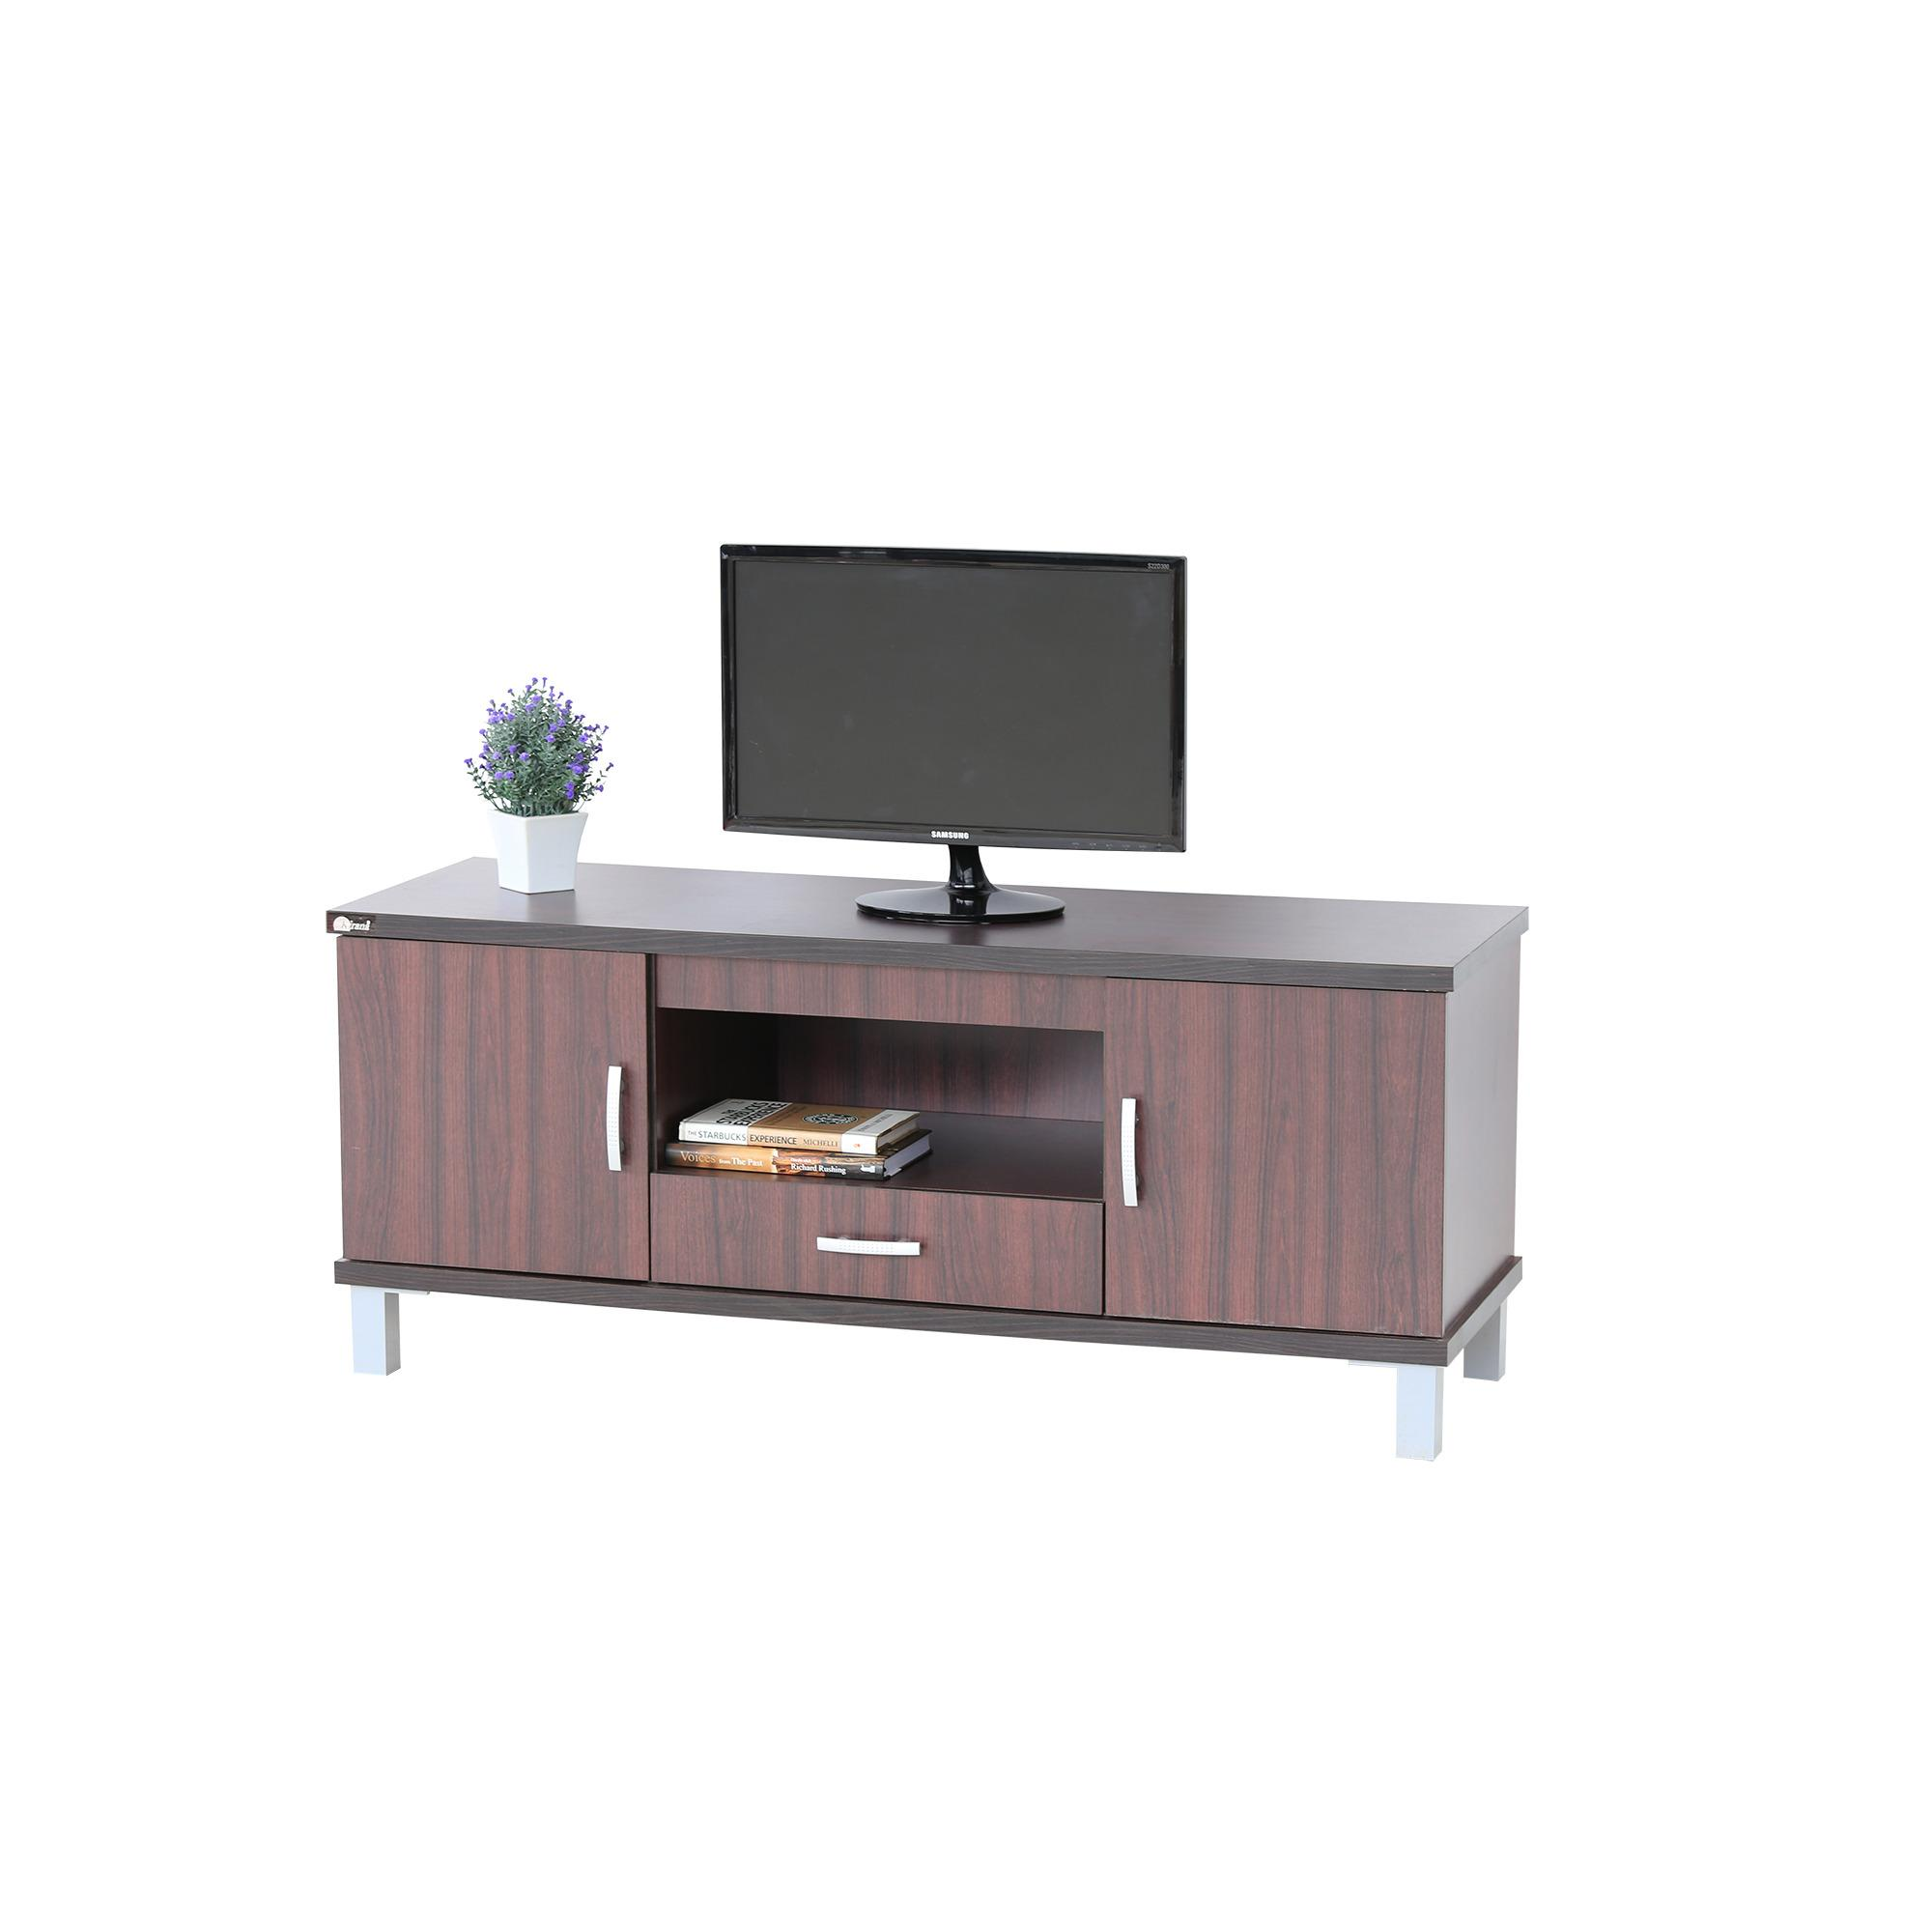 Kirana Furniture - Meja TV / Rak TV / BF 827 DM - Dark Mahony